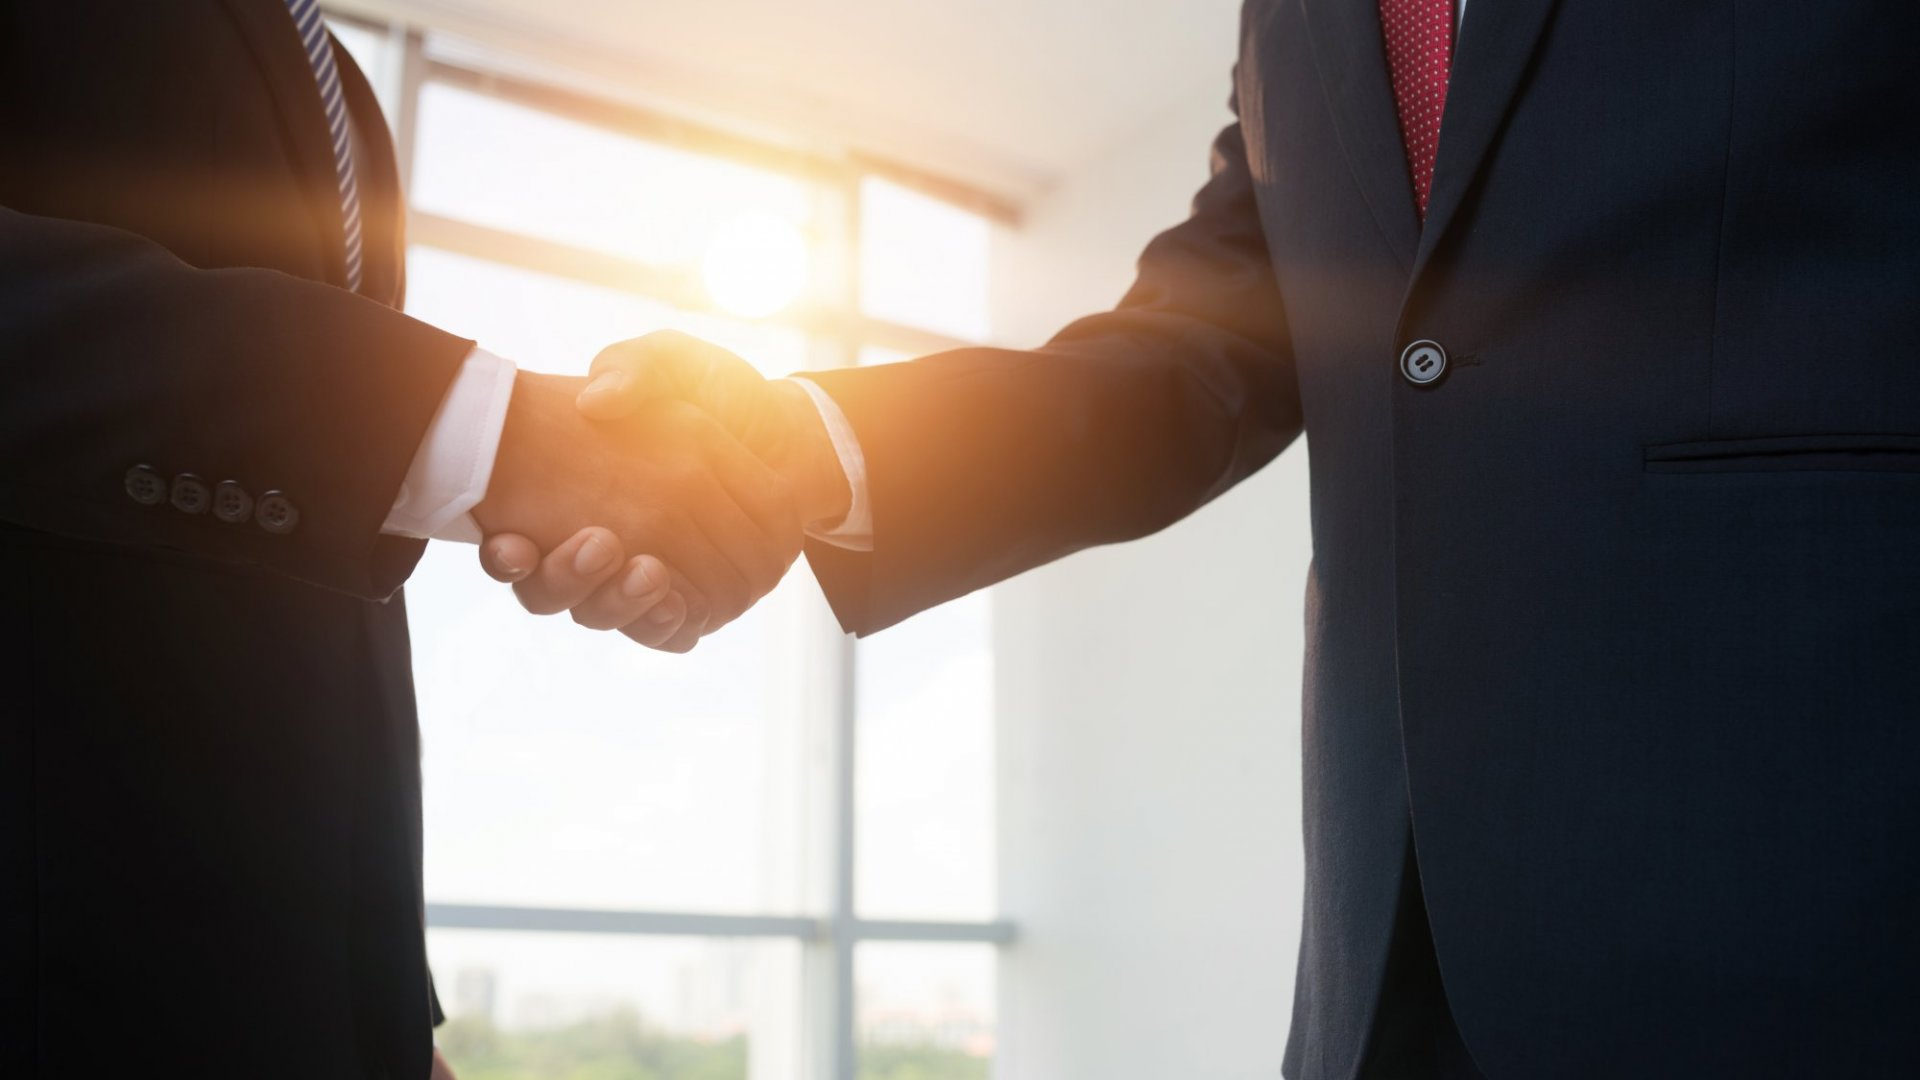 6 Things to Consider Before Jumping Into a New Partnership